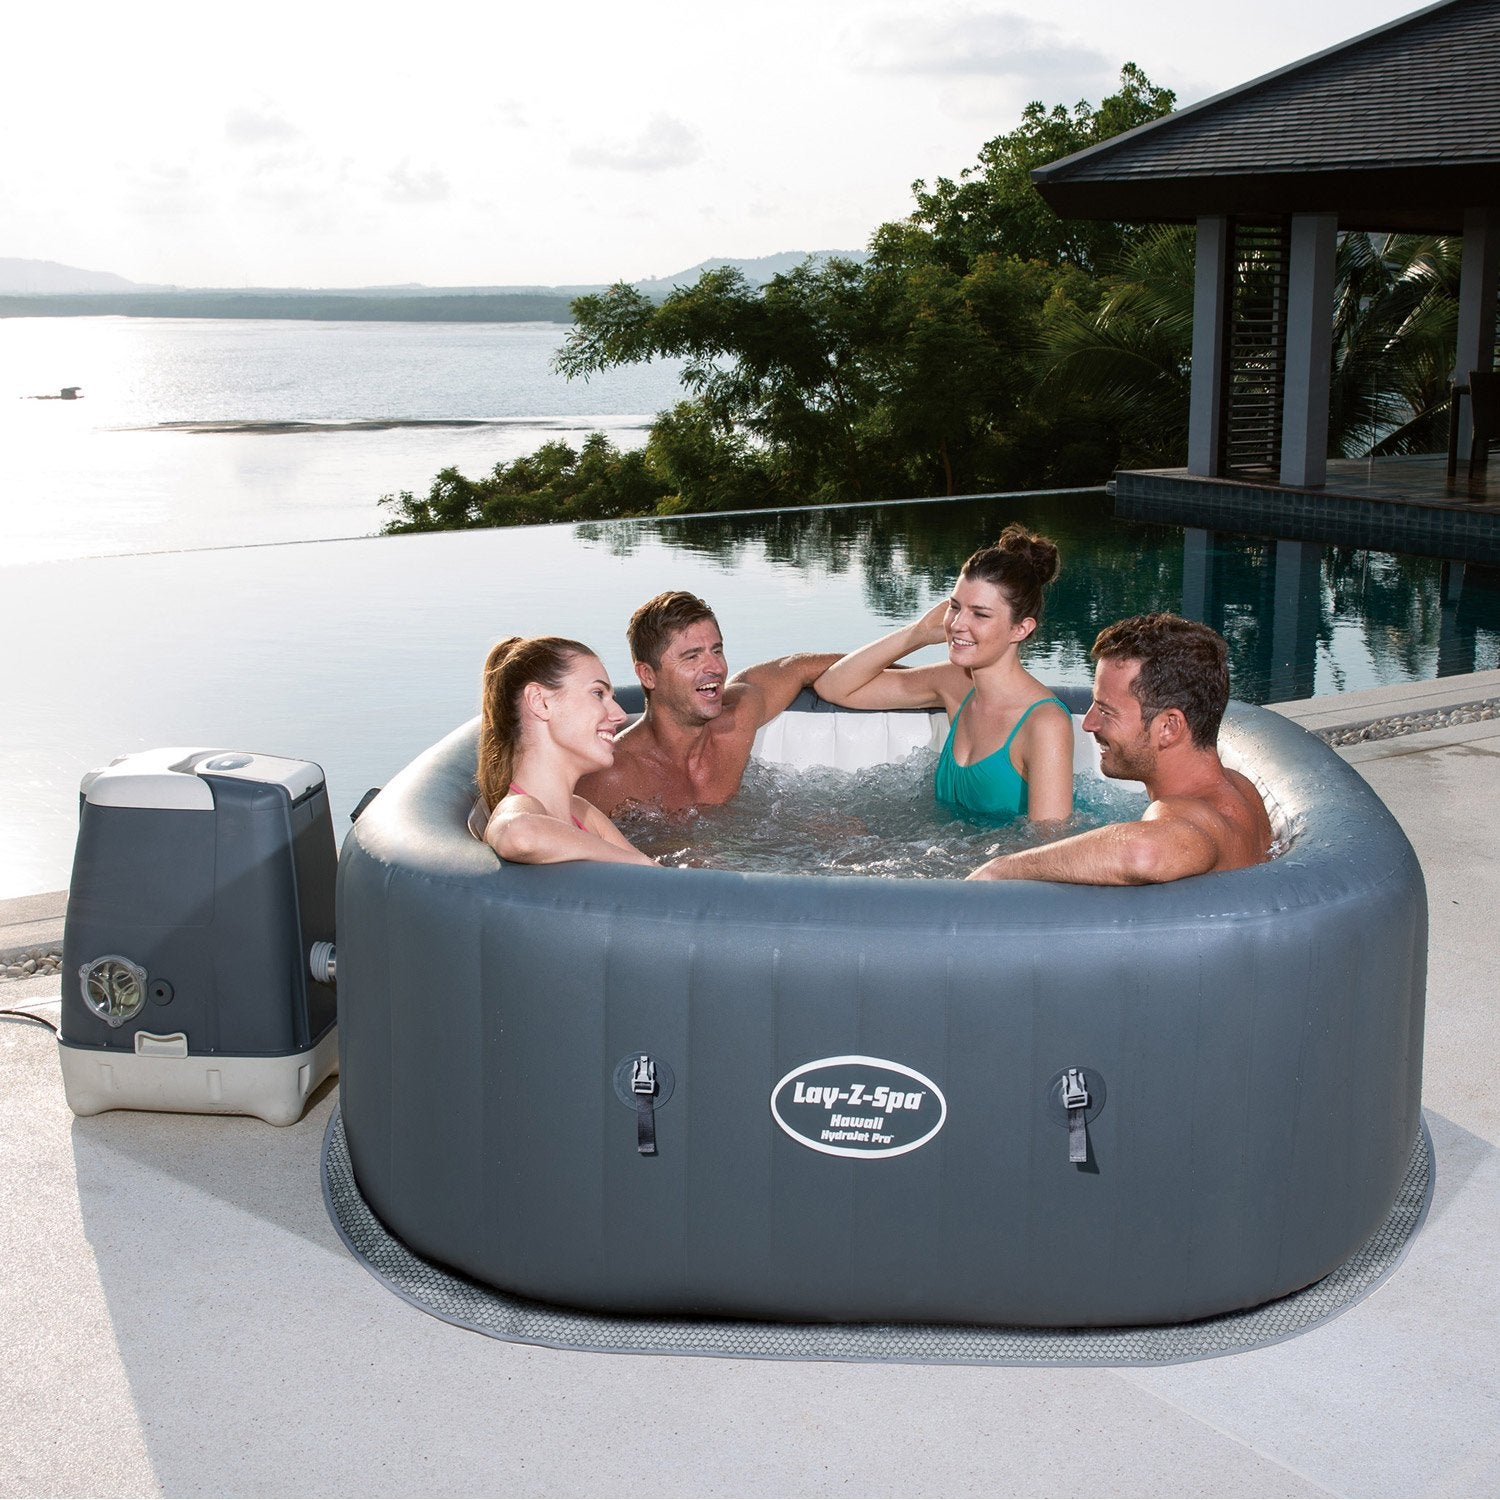 Spa gonflable bestway hawai carr 6 places assises leroy merlin - Jacuzzi gonflable carre ...